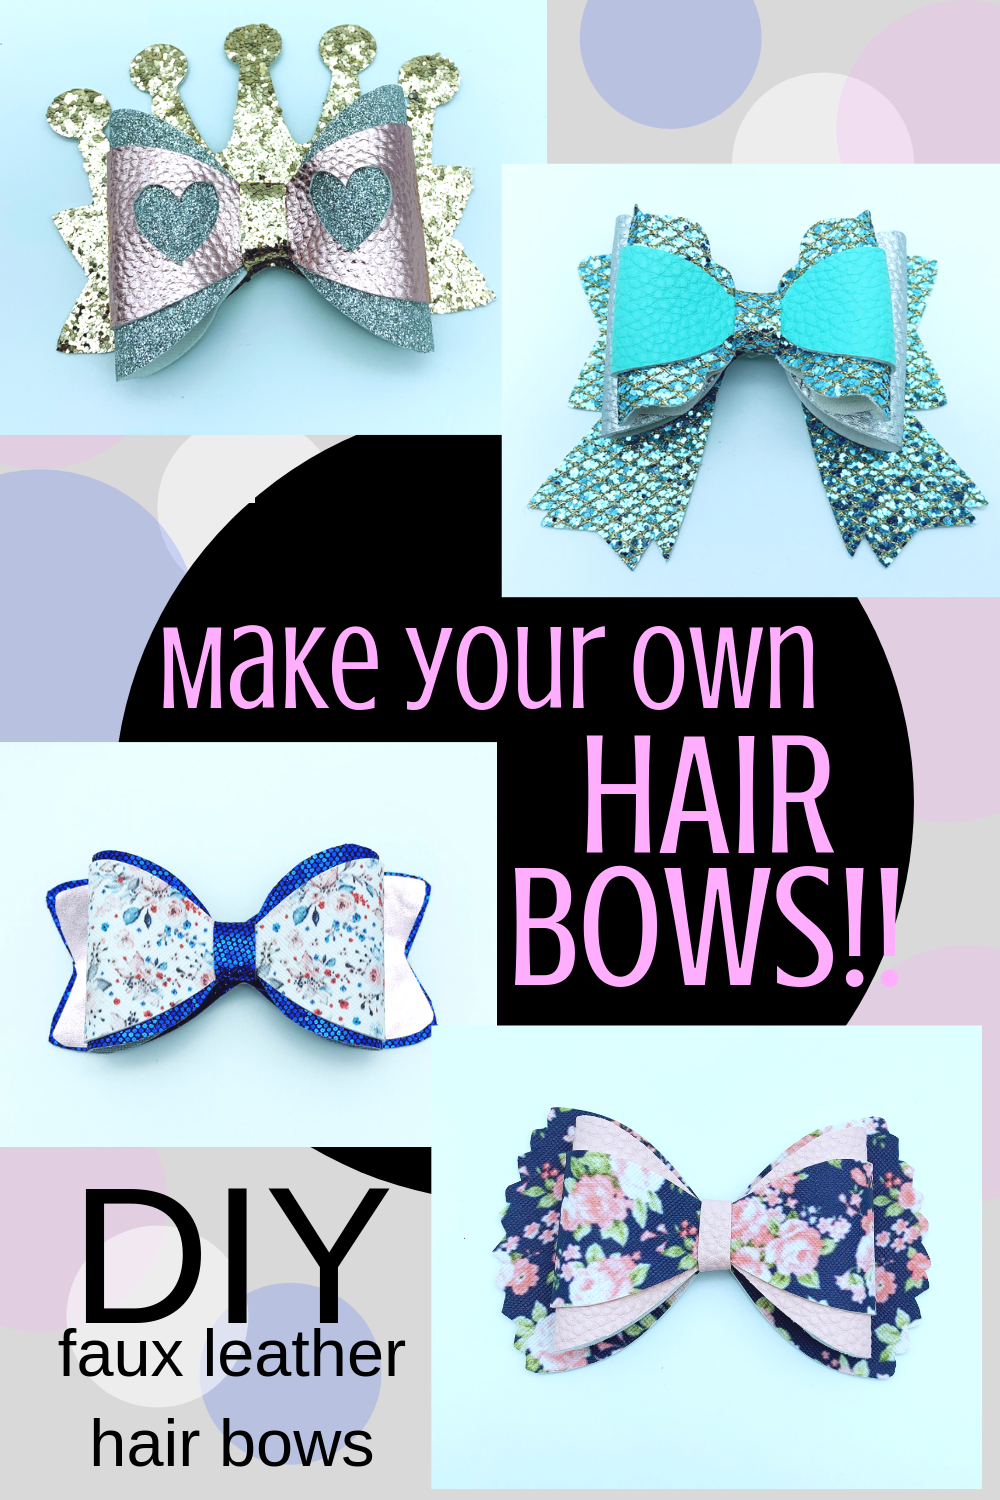 Hair bow - Princess crown hair bow svg file - diy hair bows example image 3